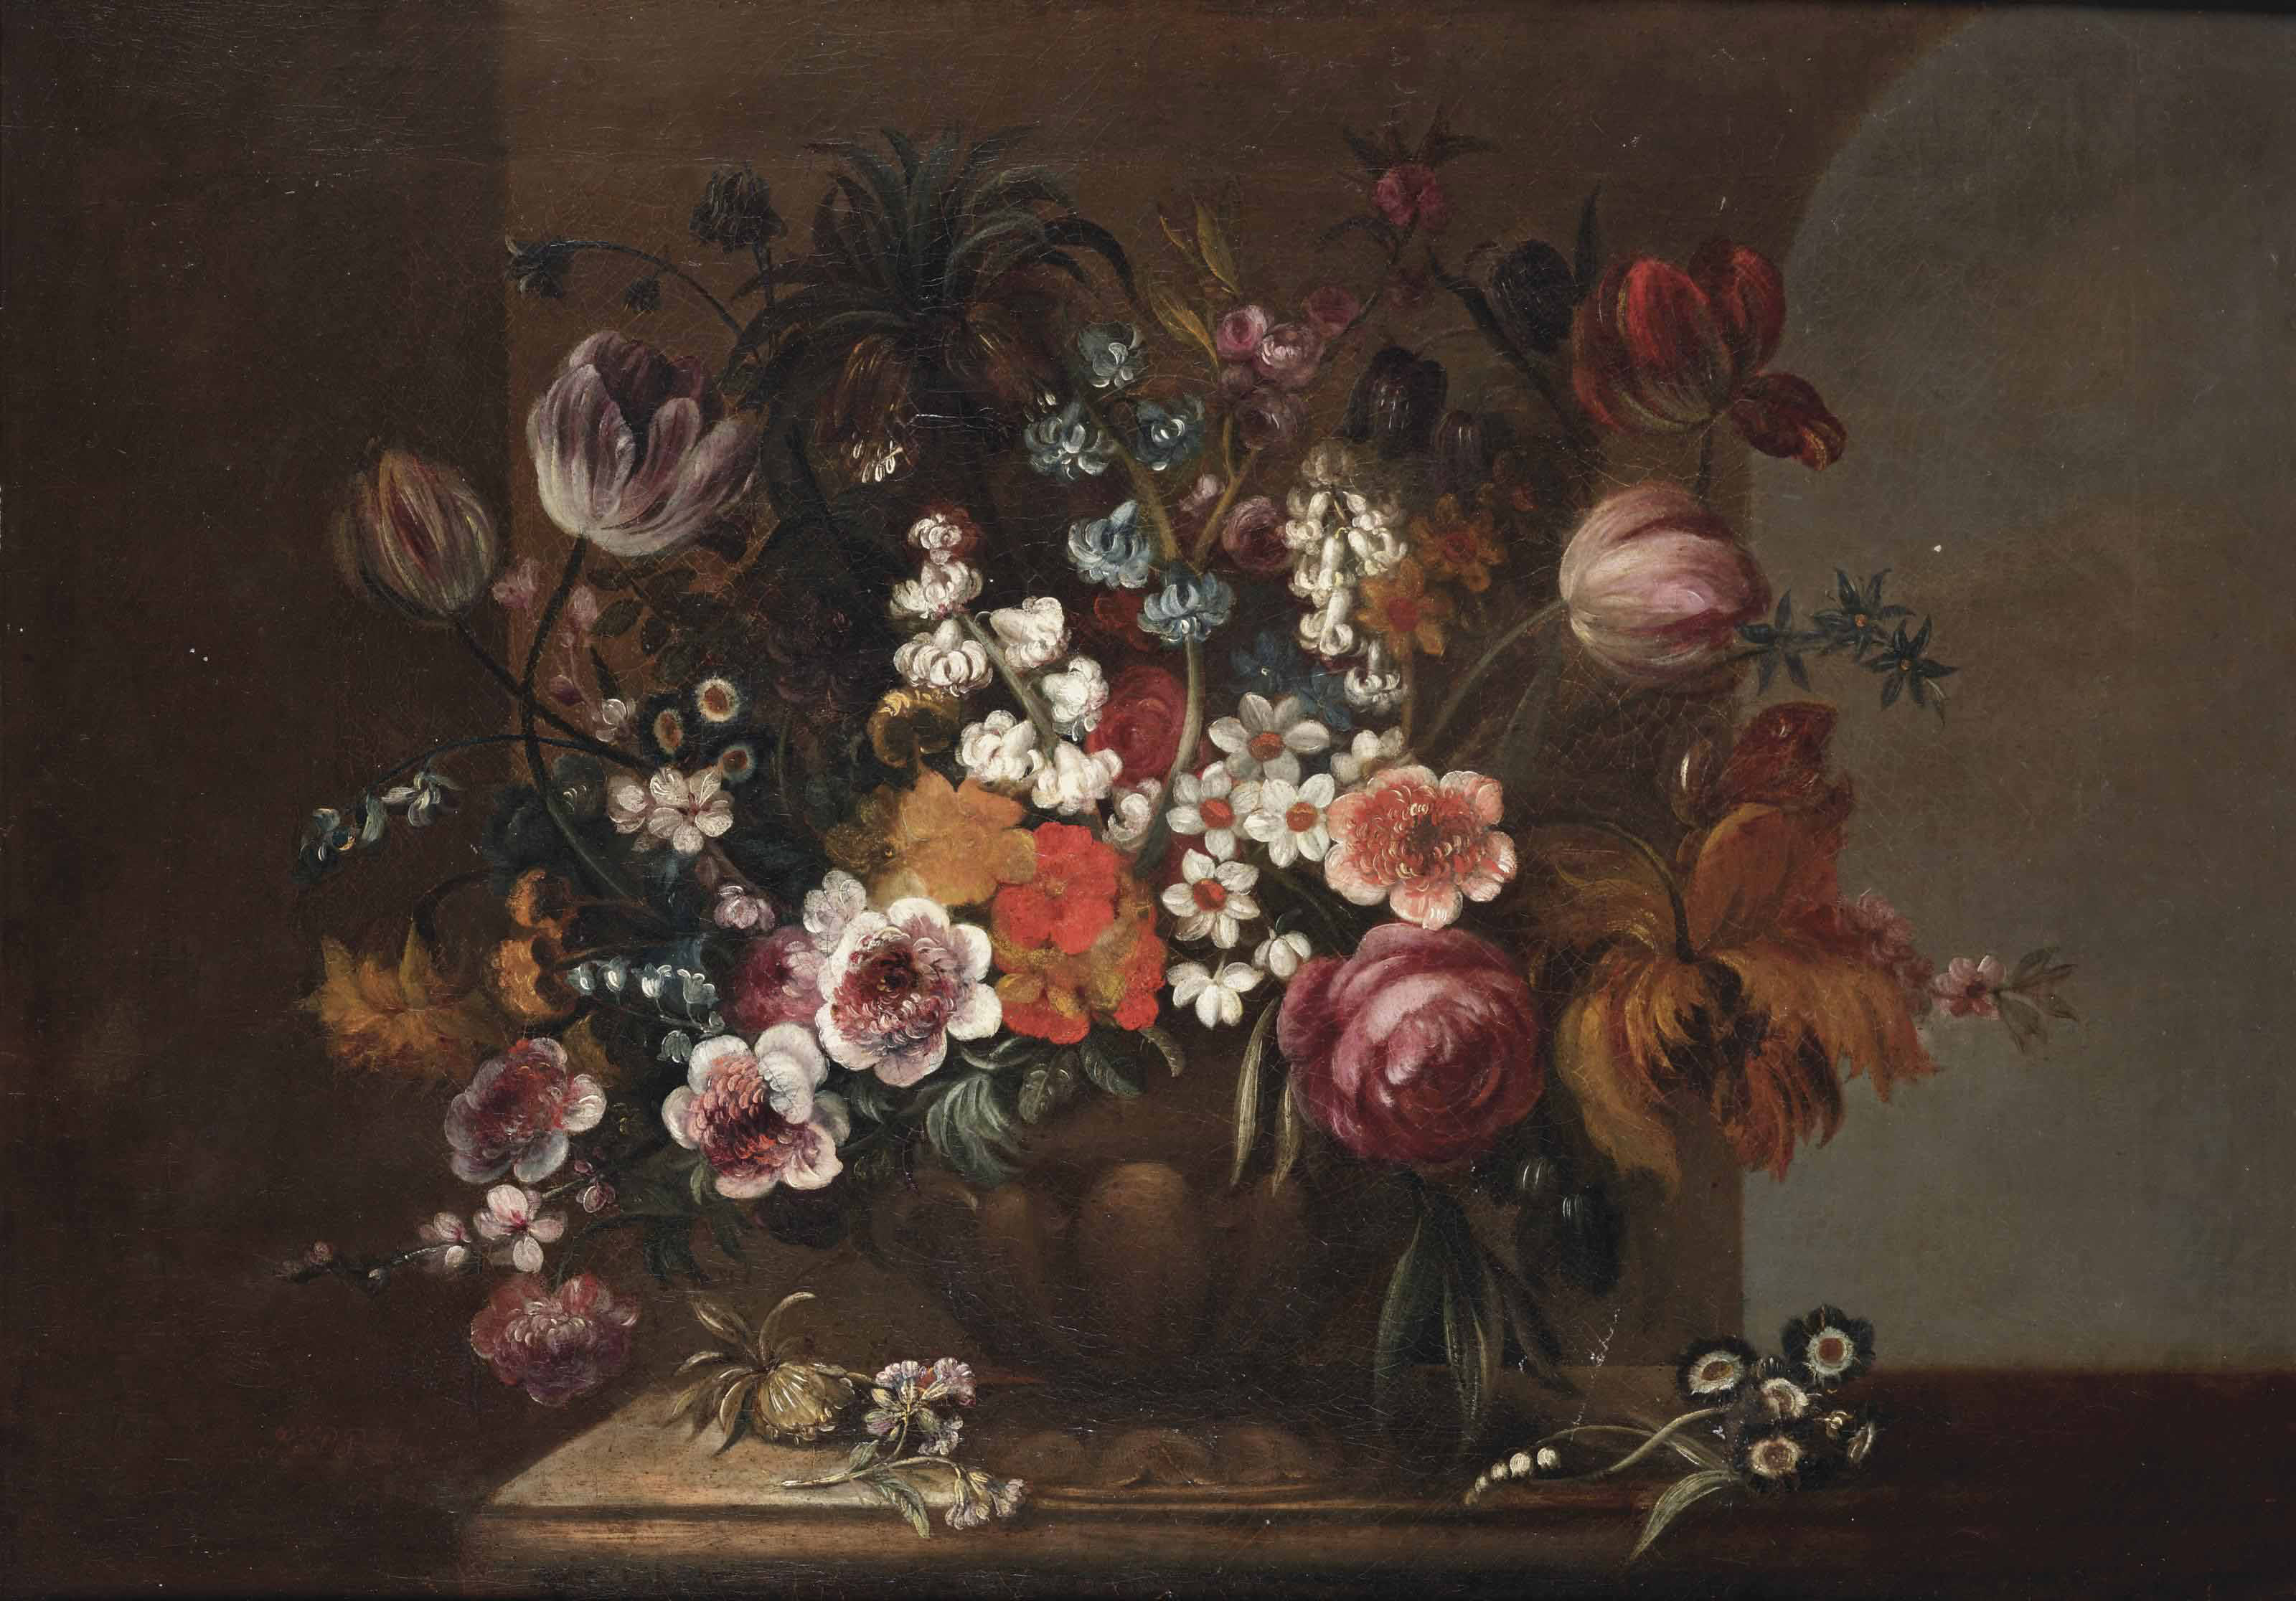 Tulips, roses, violets and other flowers in a sculpted vase on a stone ledge